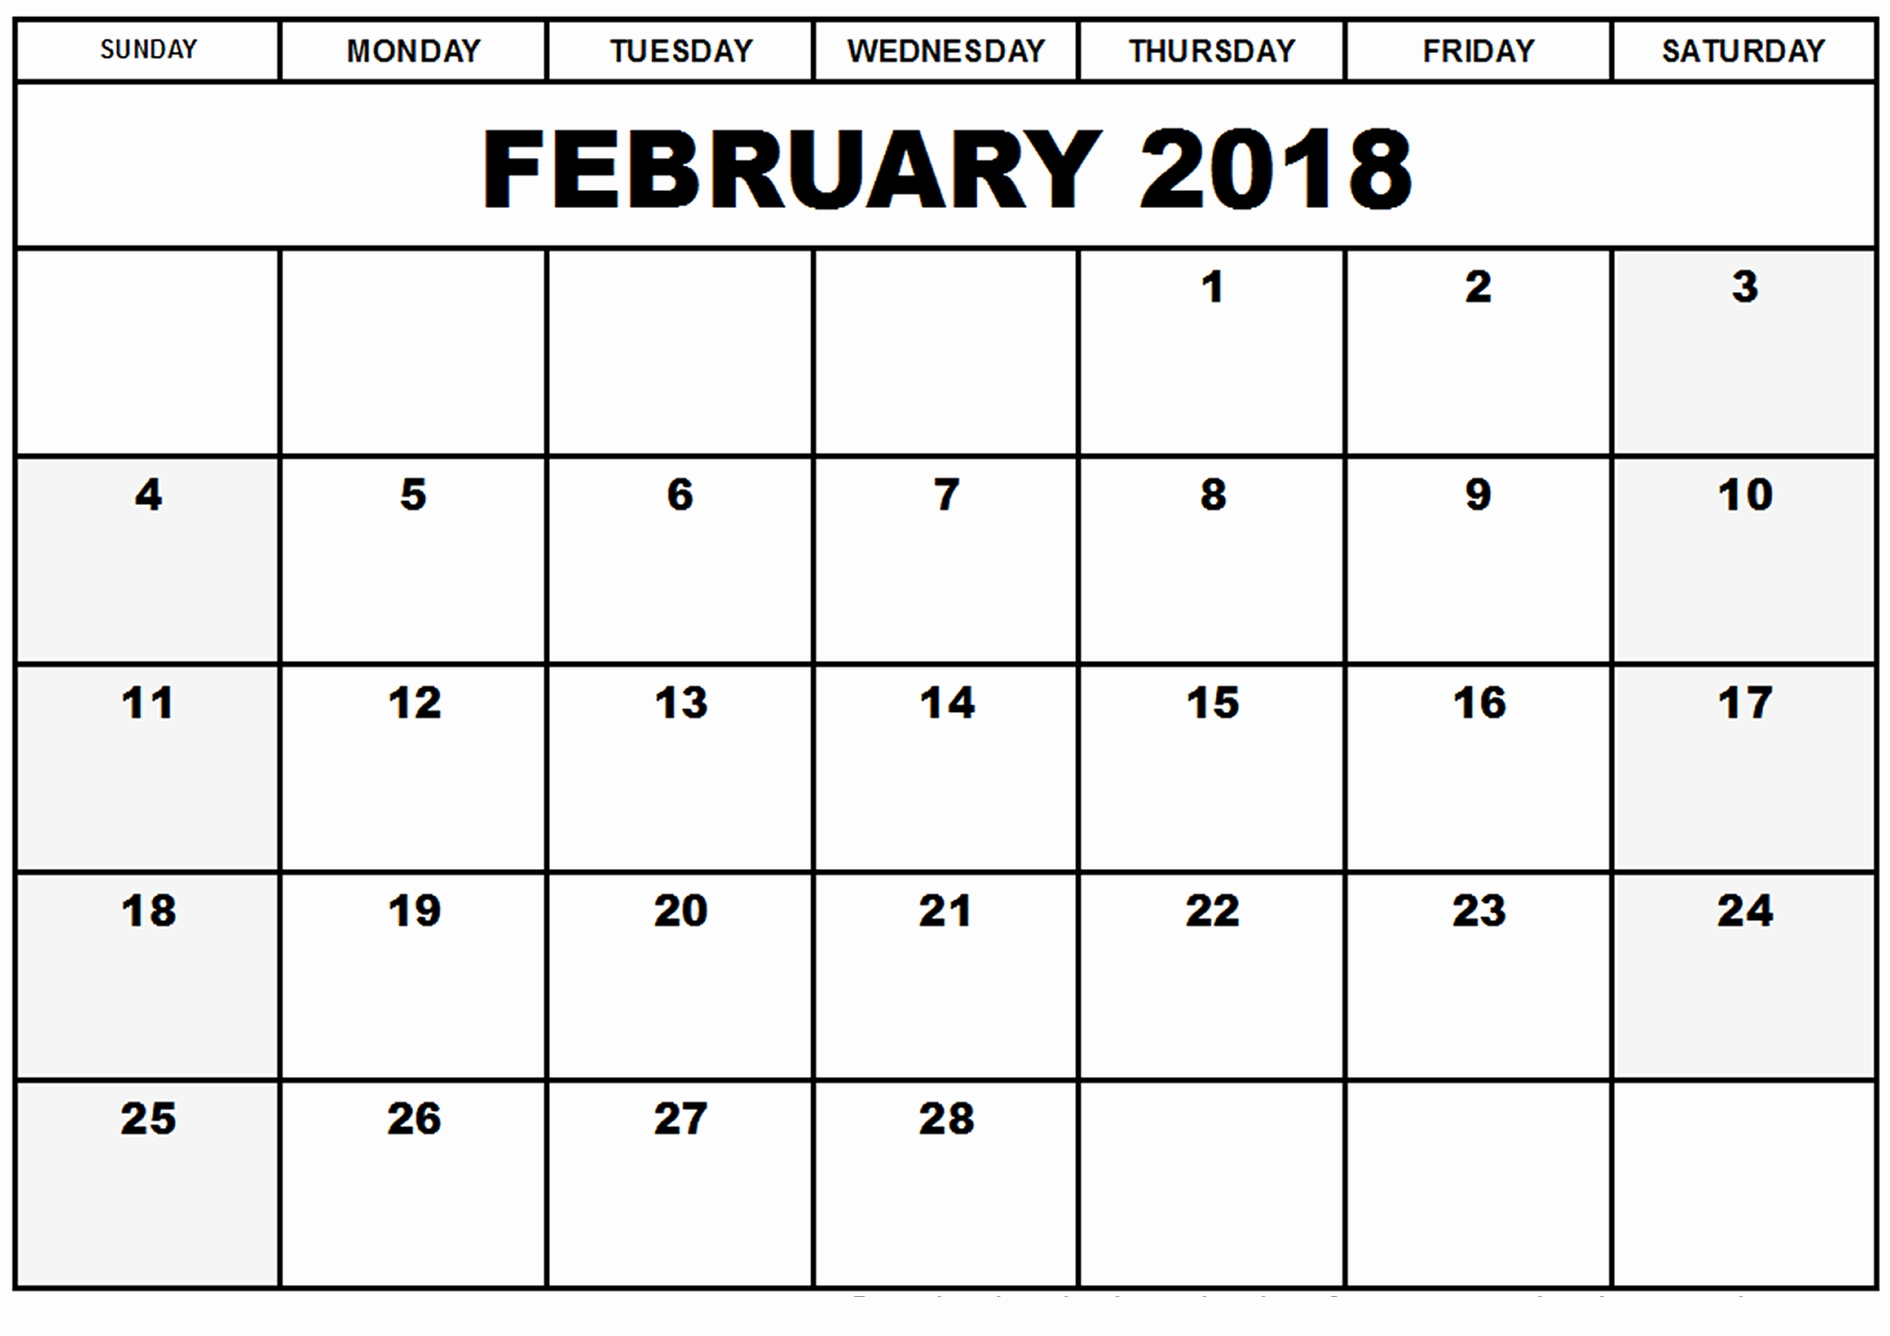 Free event Calendar Template New Free February 2018 Printable Calendar Template